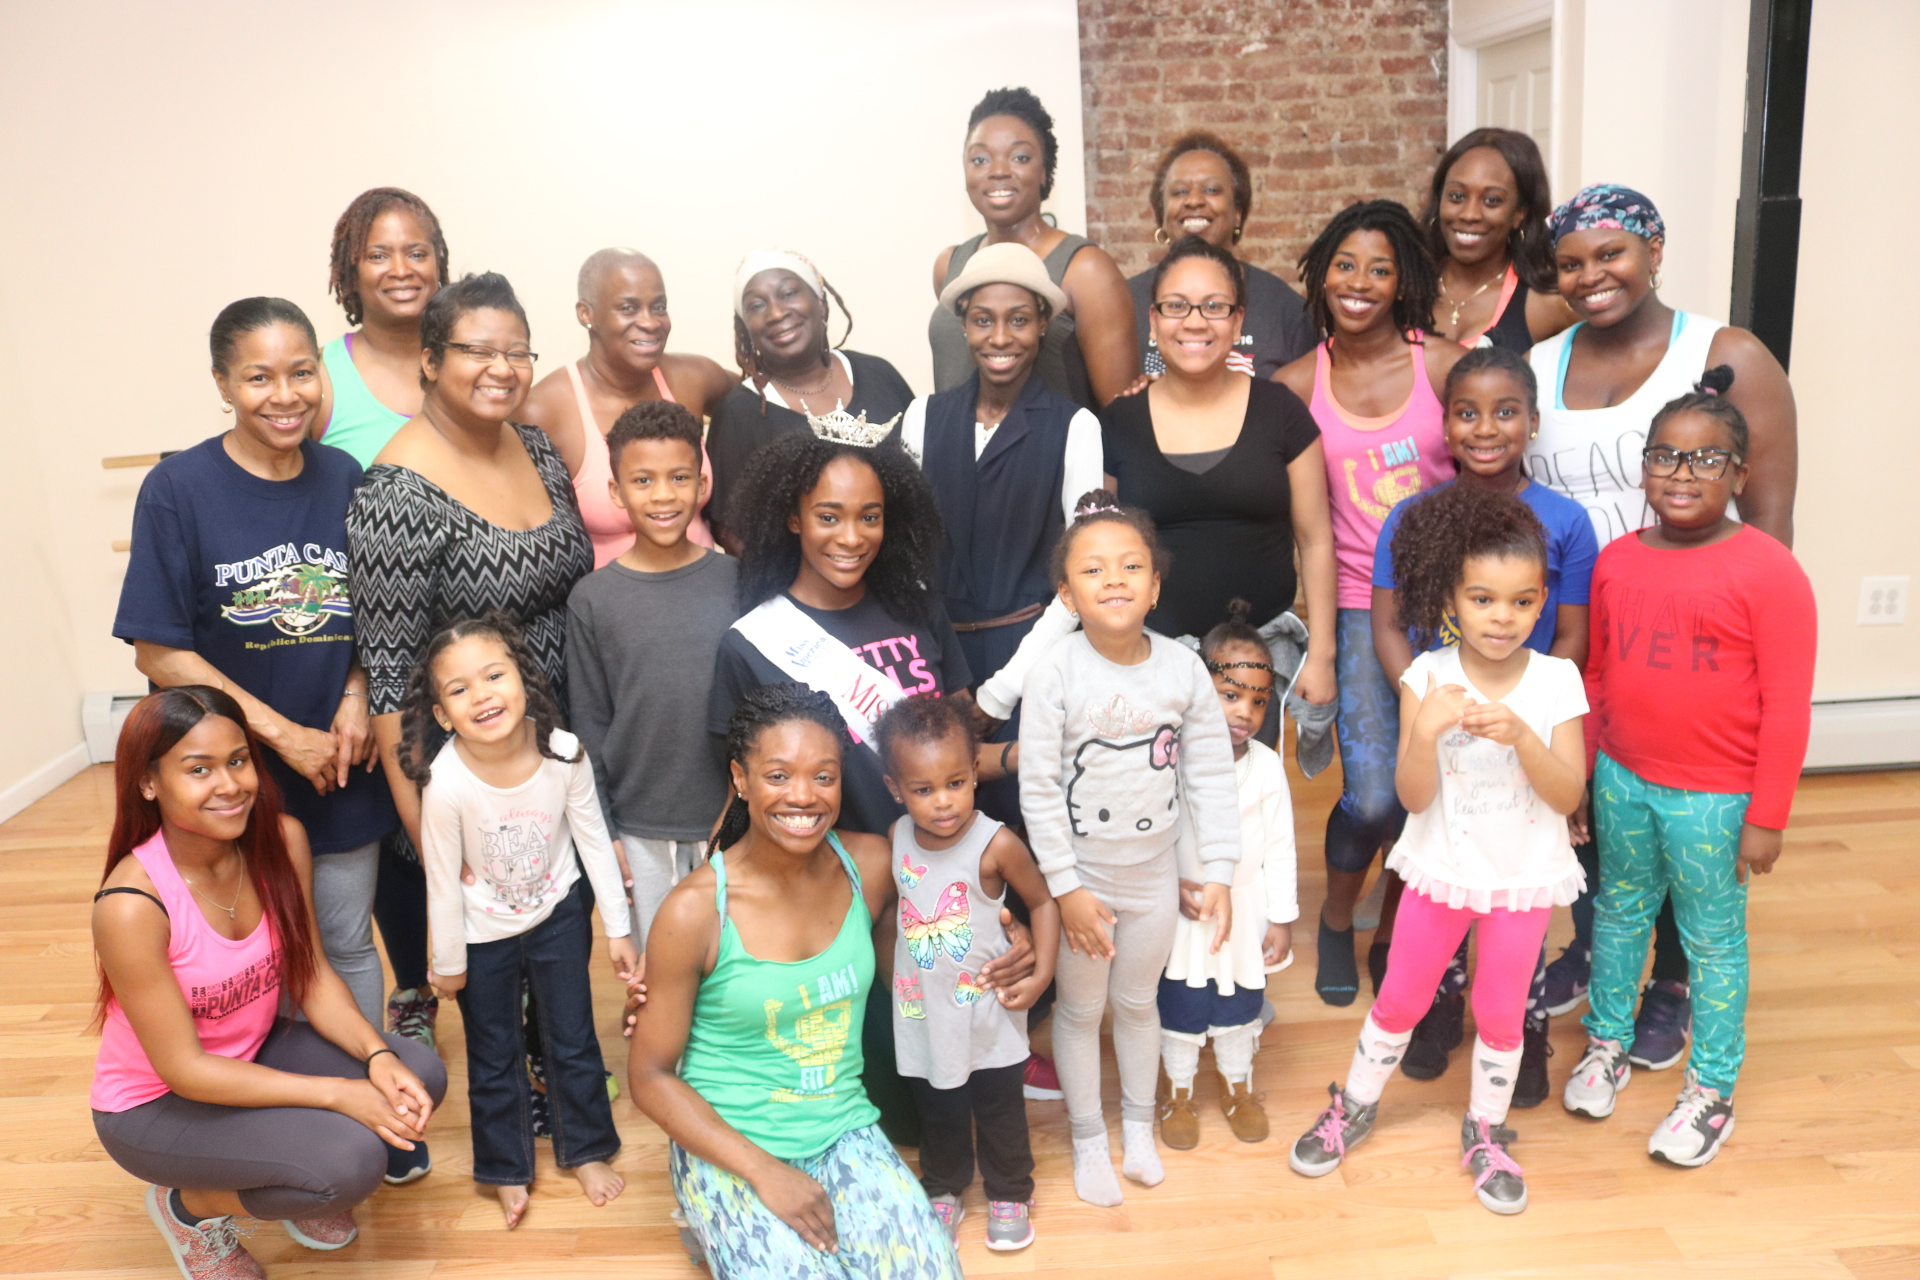 Miss Brooklyn & F4D Host a Mother Daughter Dance Party!